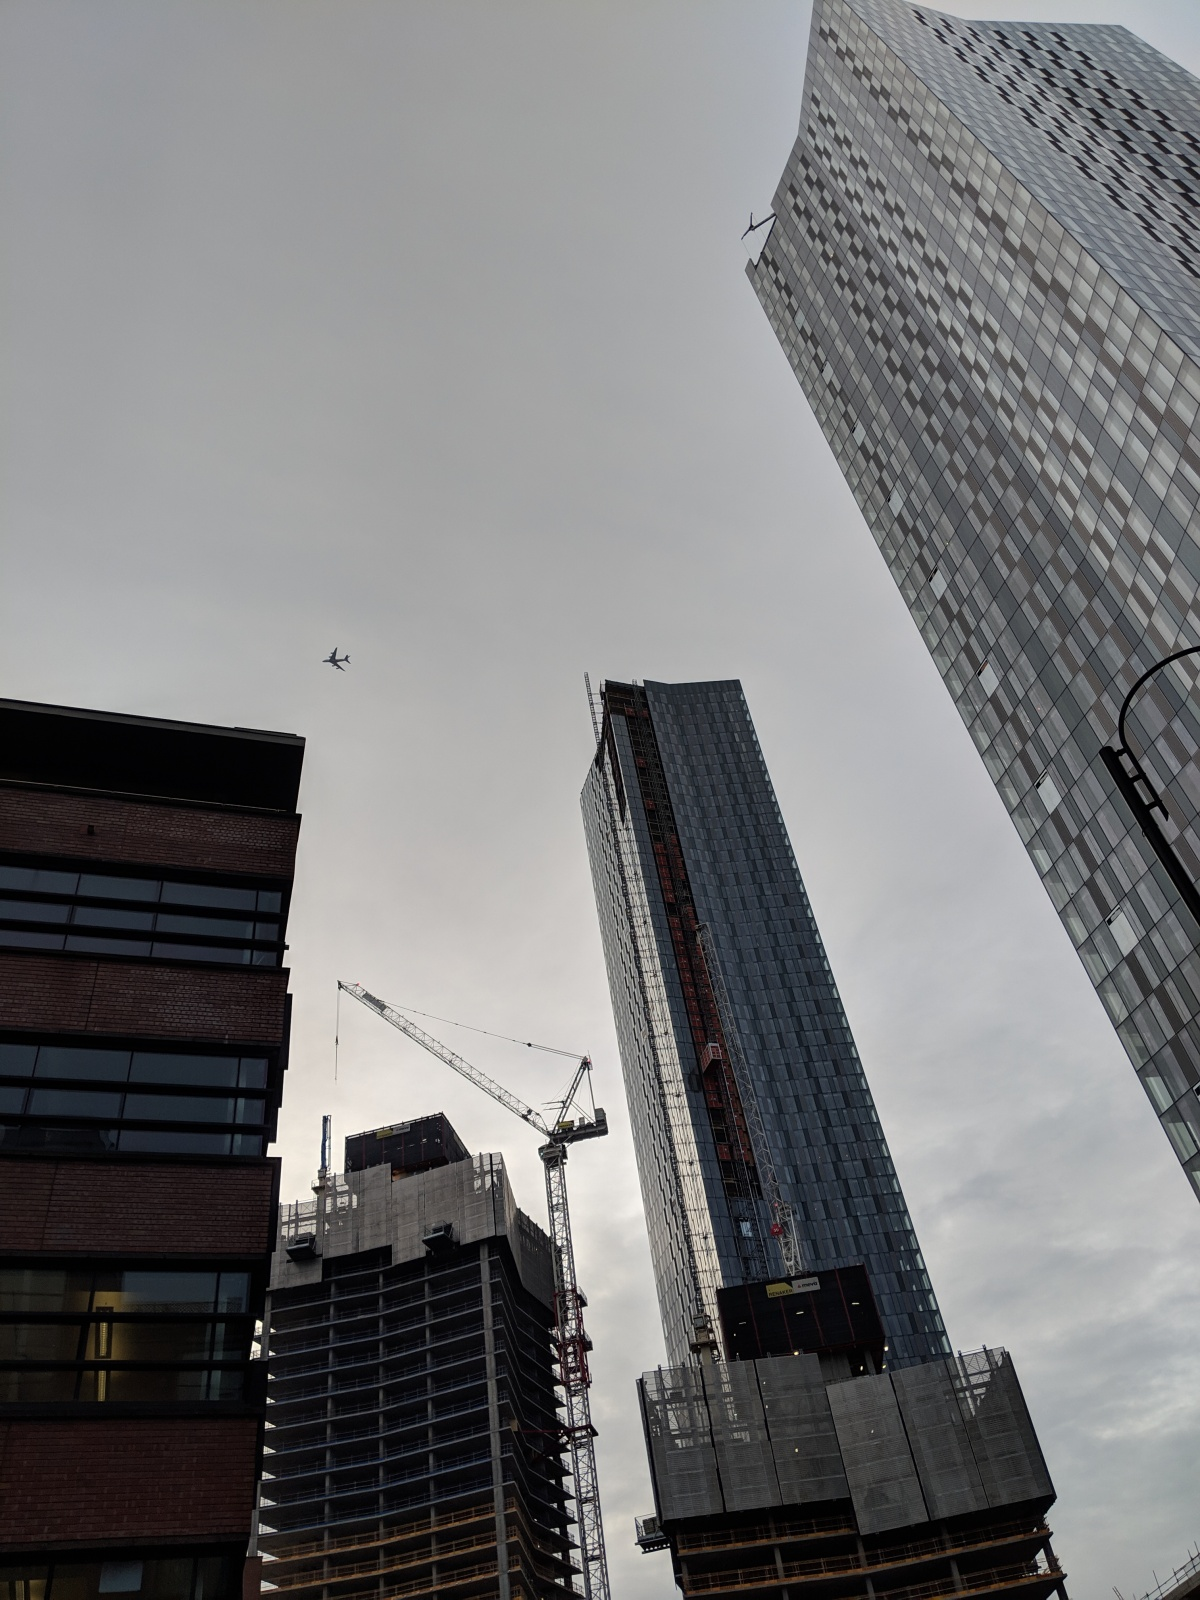 Deansgate Square site with A380 in background